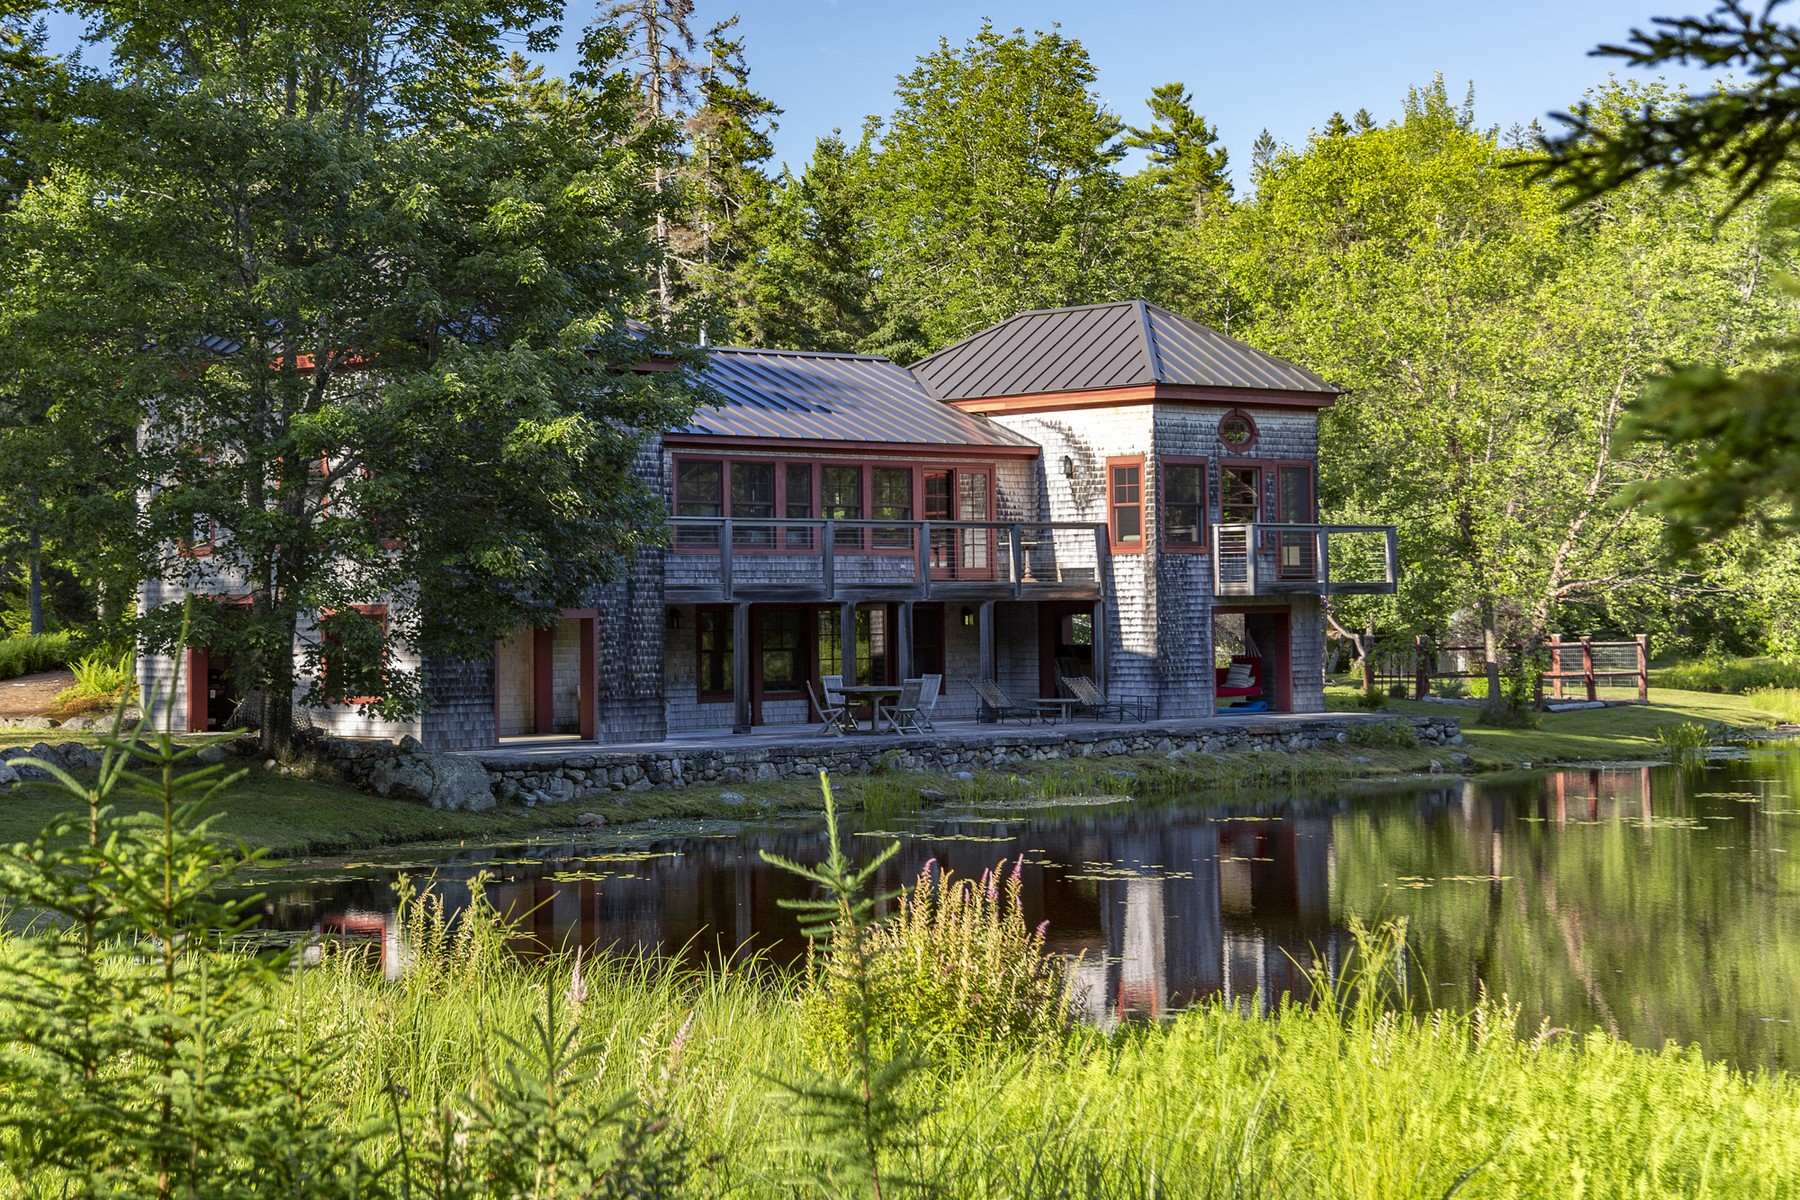 Single Family Homes for Sale at Wild Thyme 541 Indian Point Road Bar Harbor, Maine 04609 United States